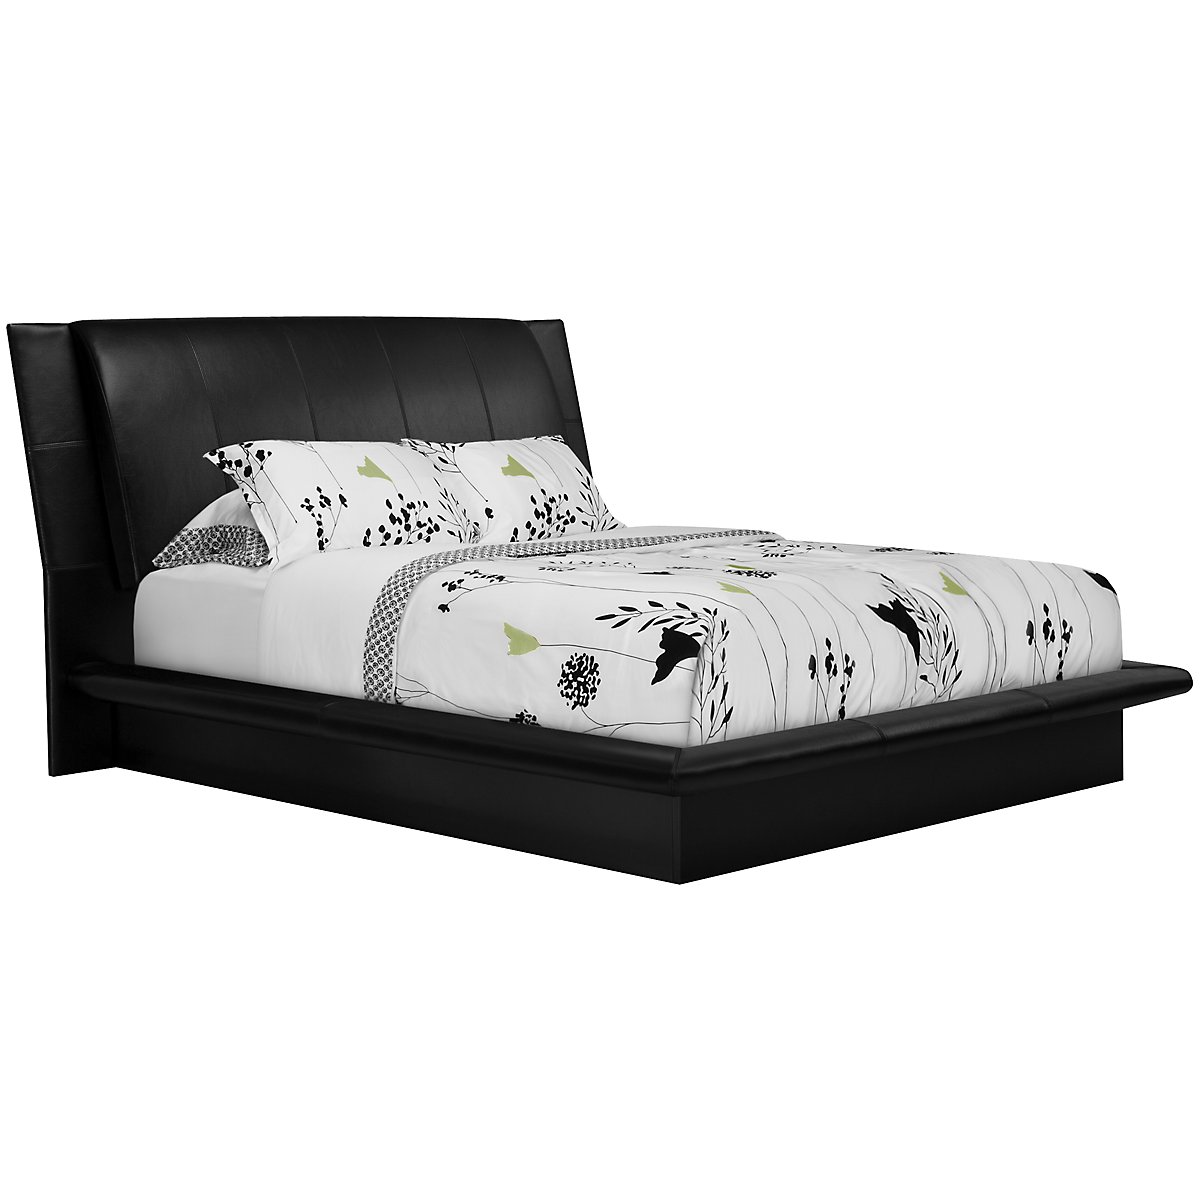 dimora black upholstered platform bed. dimora black upholstered platform bed queen  king bed